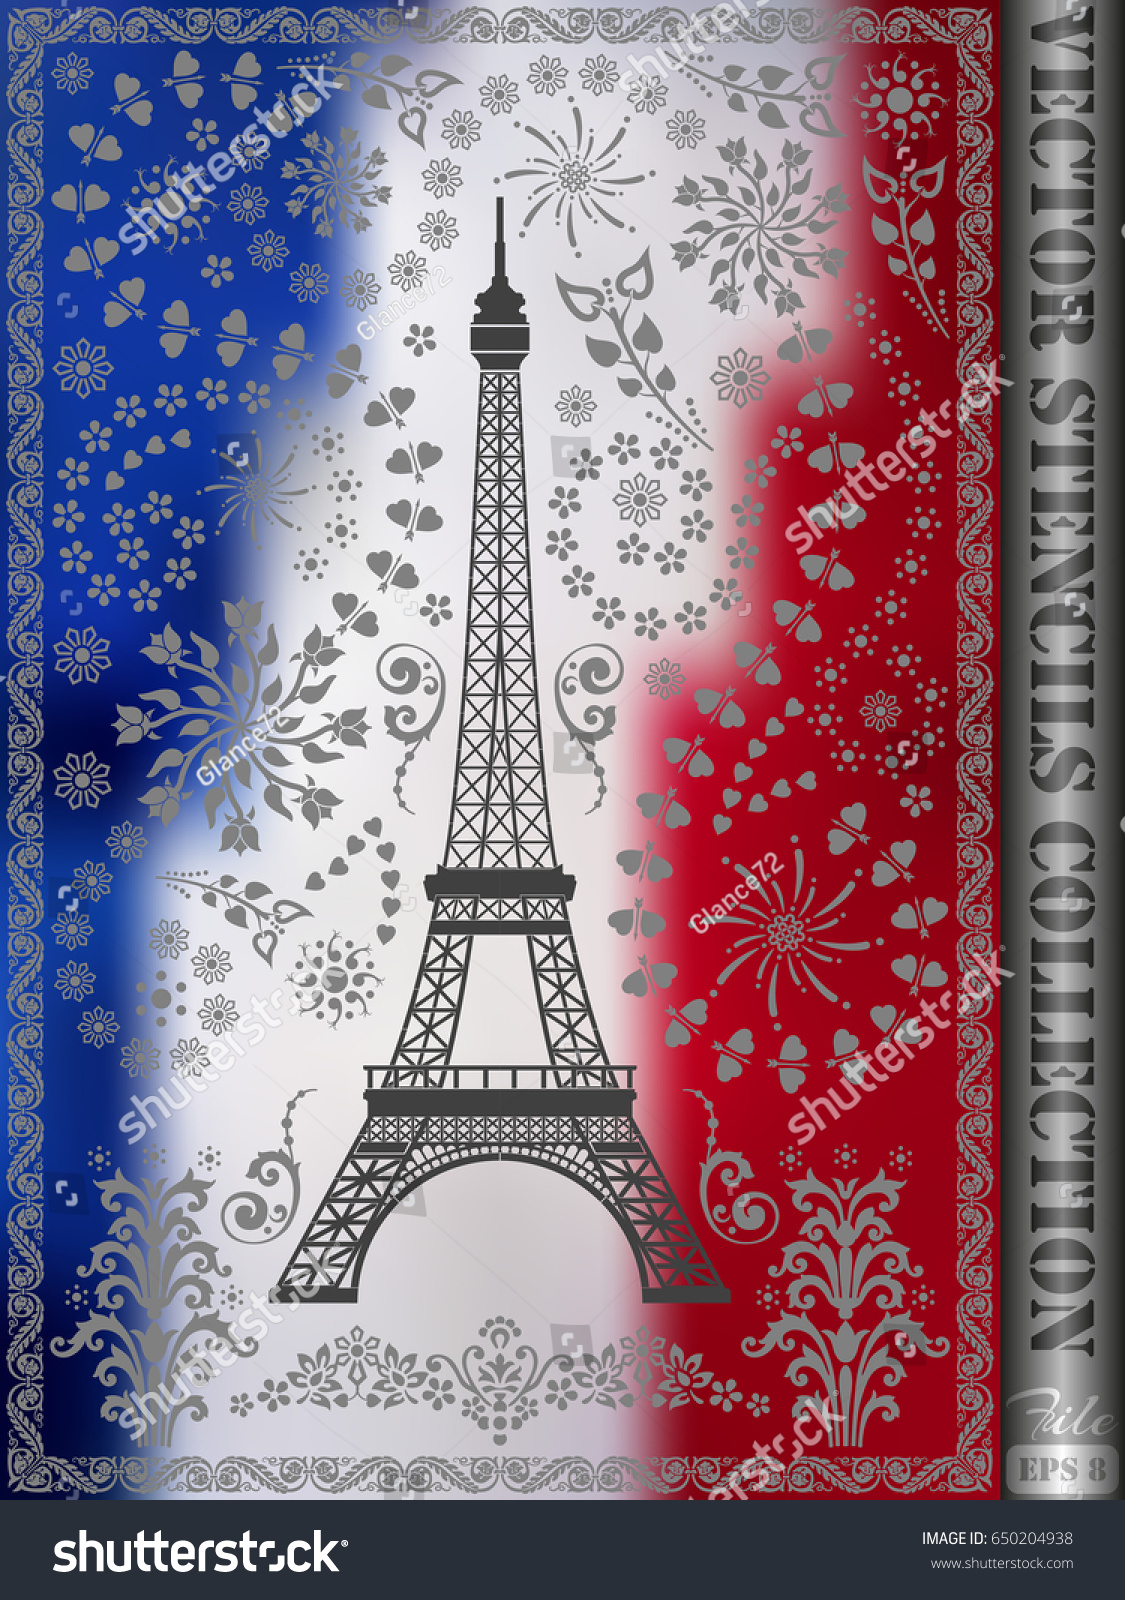 Stencil Eiffel Tower Ornament Made Flowers Stock Vector HD (Royalty ...